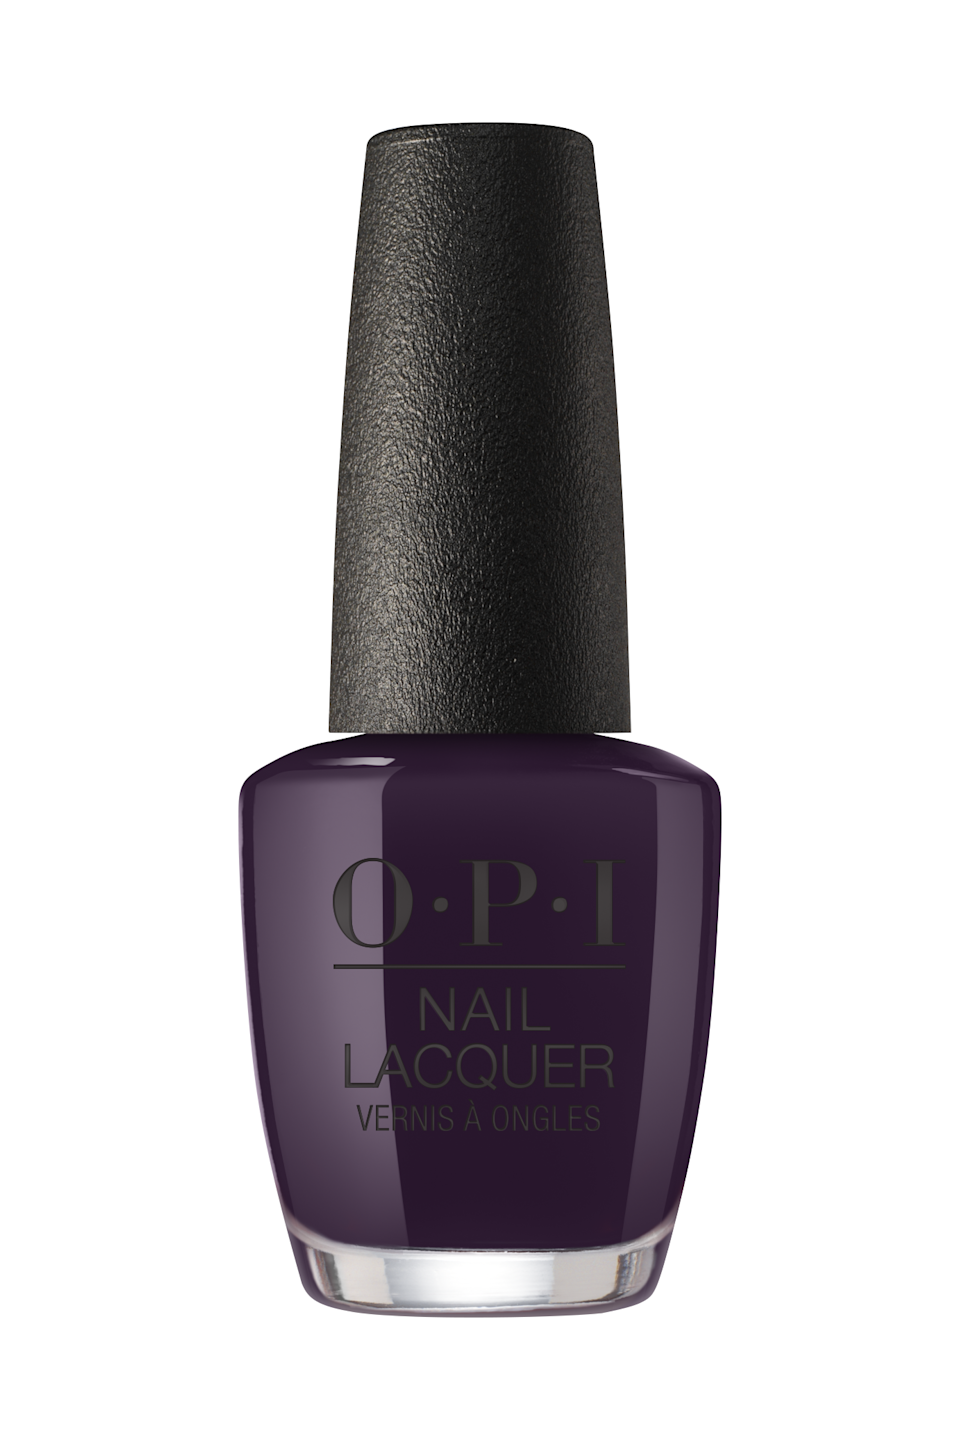 """<p><strong>OPI Nail Lacquer in Good Girls Gone Plaid</strong></p><p>ulta.com</p><p><strong>$6.50</strong></p><p><a href=""""https://go.redirectingat.com?id=74968X1596630&url=https%3A%2F%2Fwww.ulta.com%2Fscotland-infinite-shine-collection%3FproductId%3Dpimprod2008445&sref=https%3A%2F%2Fwww.marieclaire.com%2Fbeauty%2Fg3965%2Ffall-nail-colors%2F"""" rel=""""nofollow noopener"""" target=""""_blank"""" data-ylk=""""slk:SHOP IT"""" class=""""link rapid-noclick-resp"""">SHOP IT</a></p><p>OPI's fall collection is inspired by Scotland, and we're here for anything that gives us <em>Outlander</em> vibes. No doubt Claire would wear this coming to Jamie's rescue on horseback, but it's also perfectly suited for a chilly Saturday night.</p>"""